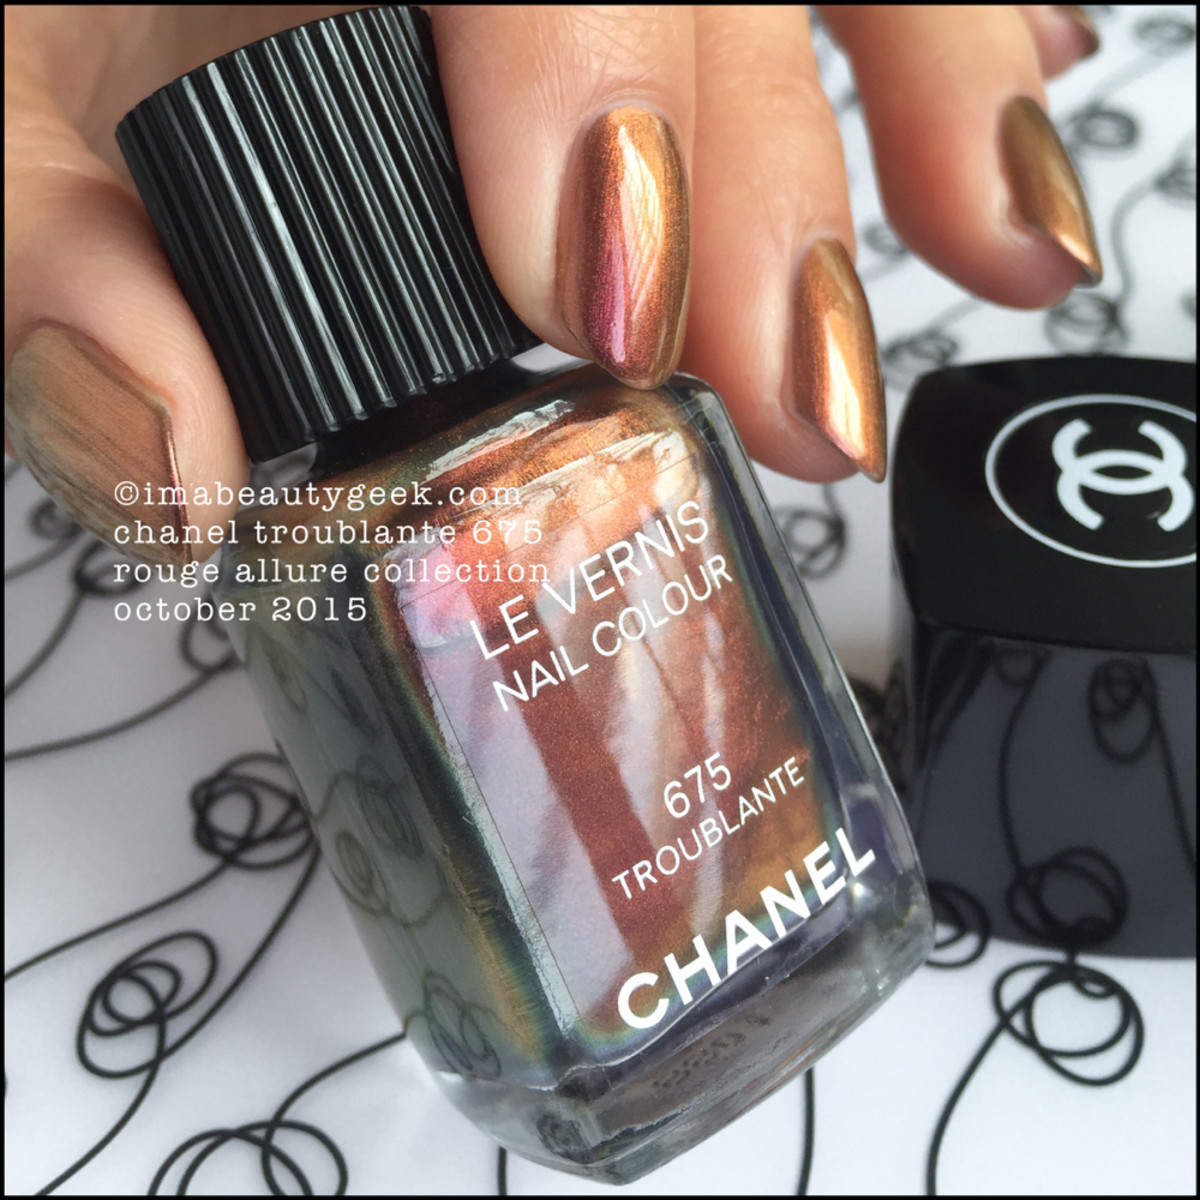 Chanel Troublante 675 Le Vernis Rouge Allure 2015 _ 2